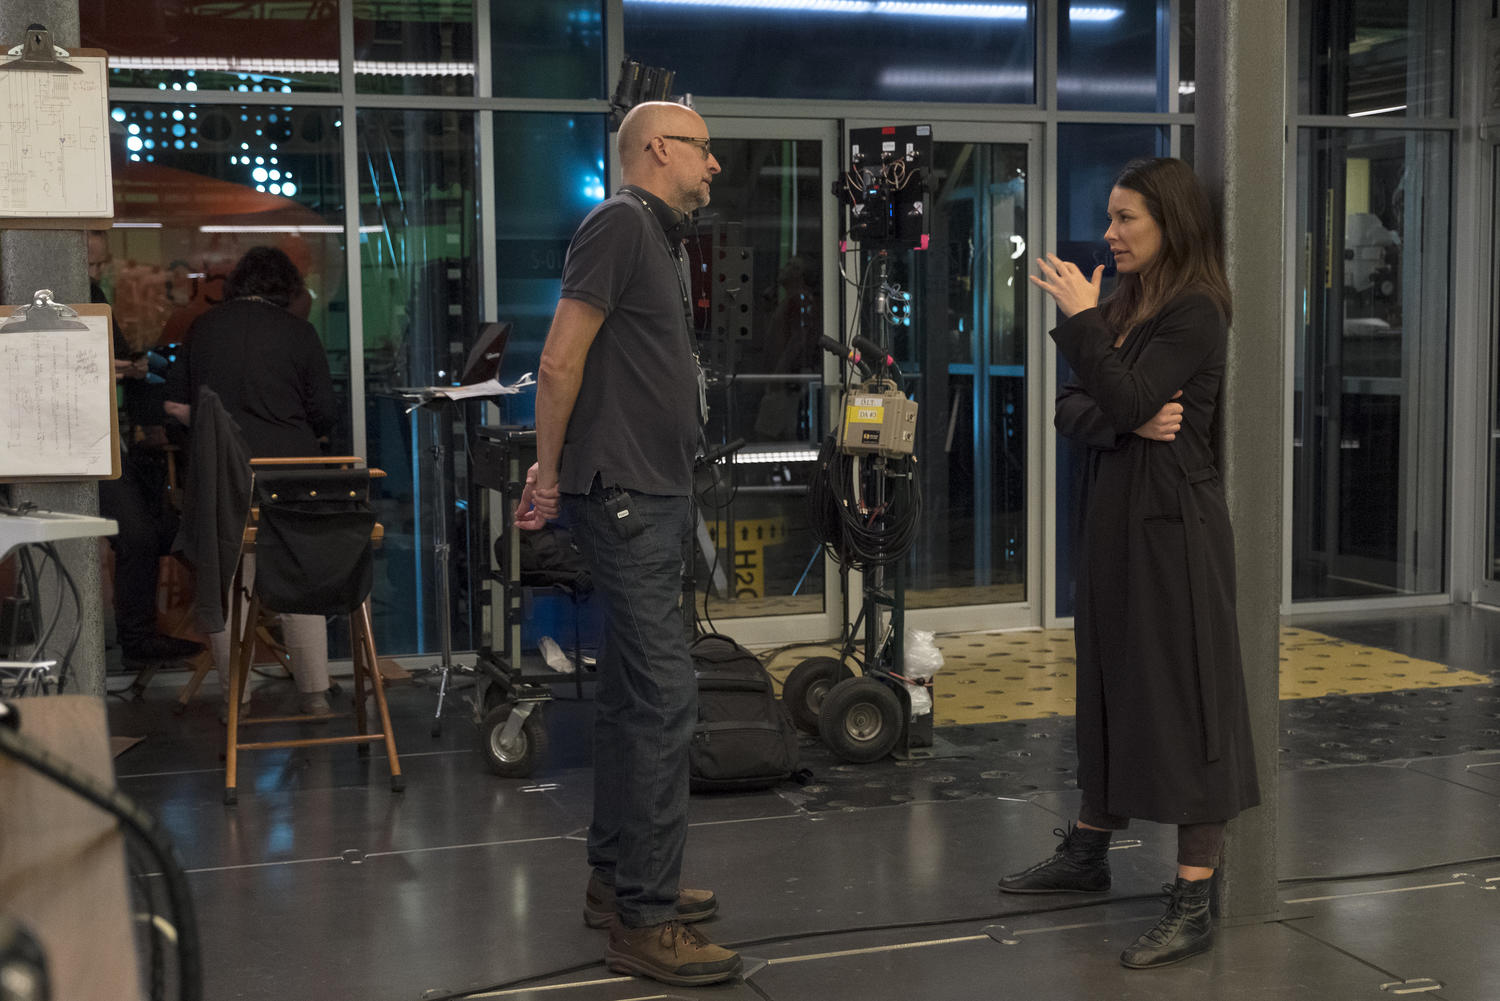 Evangeline Lilly and Peyton Reed on the set of Ant-Man and the Wasp